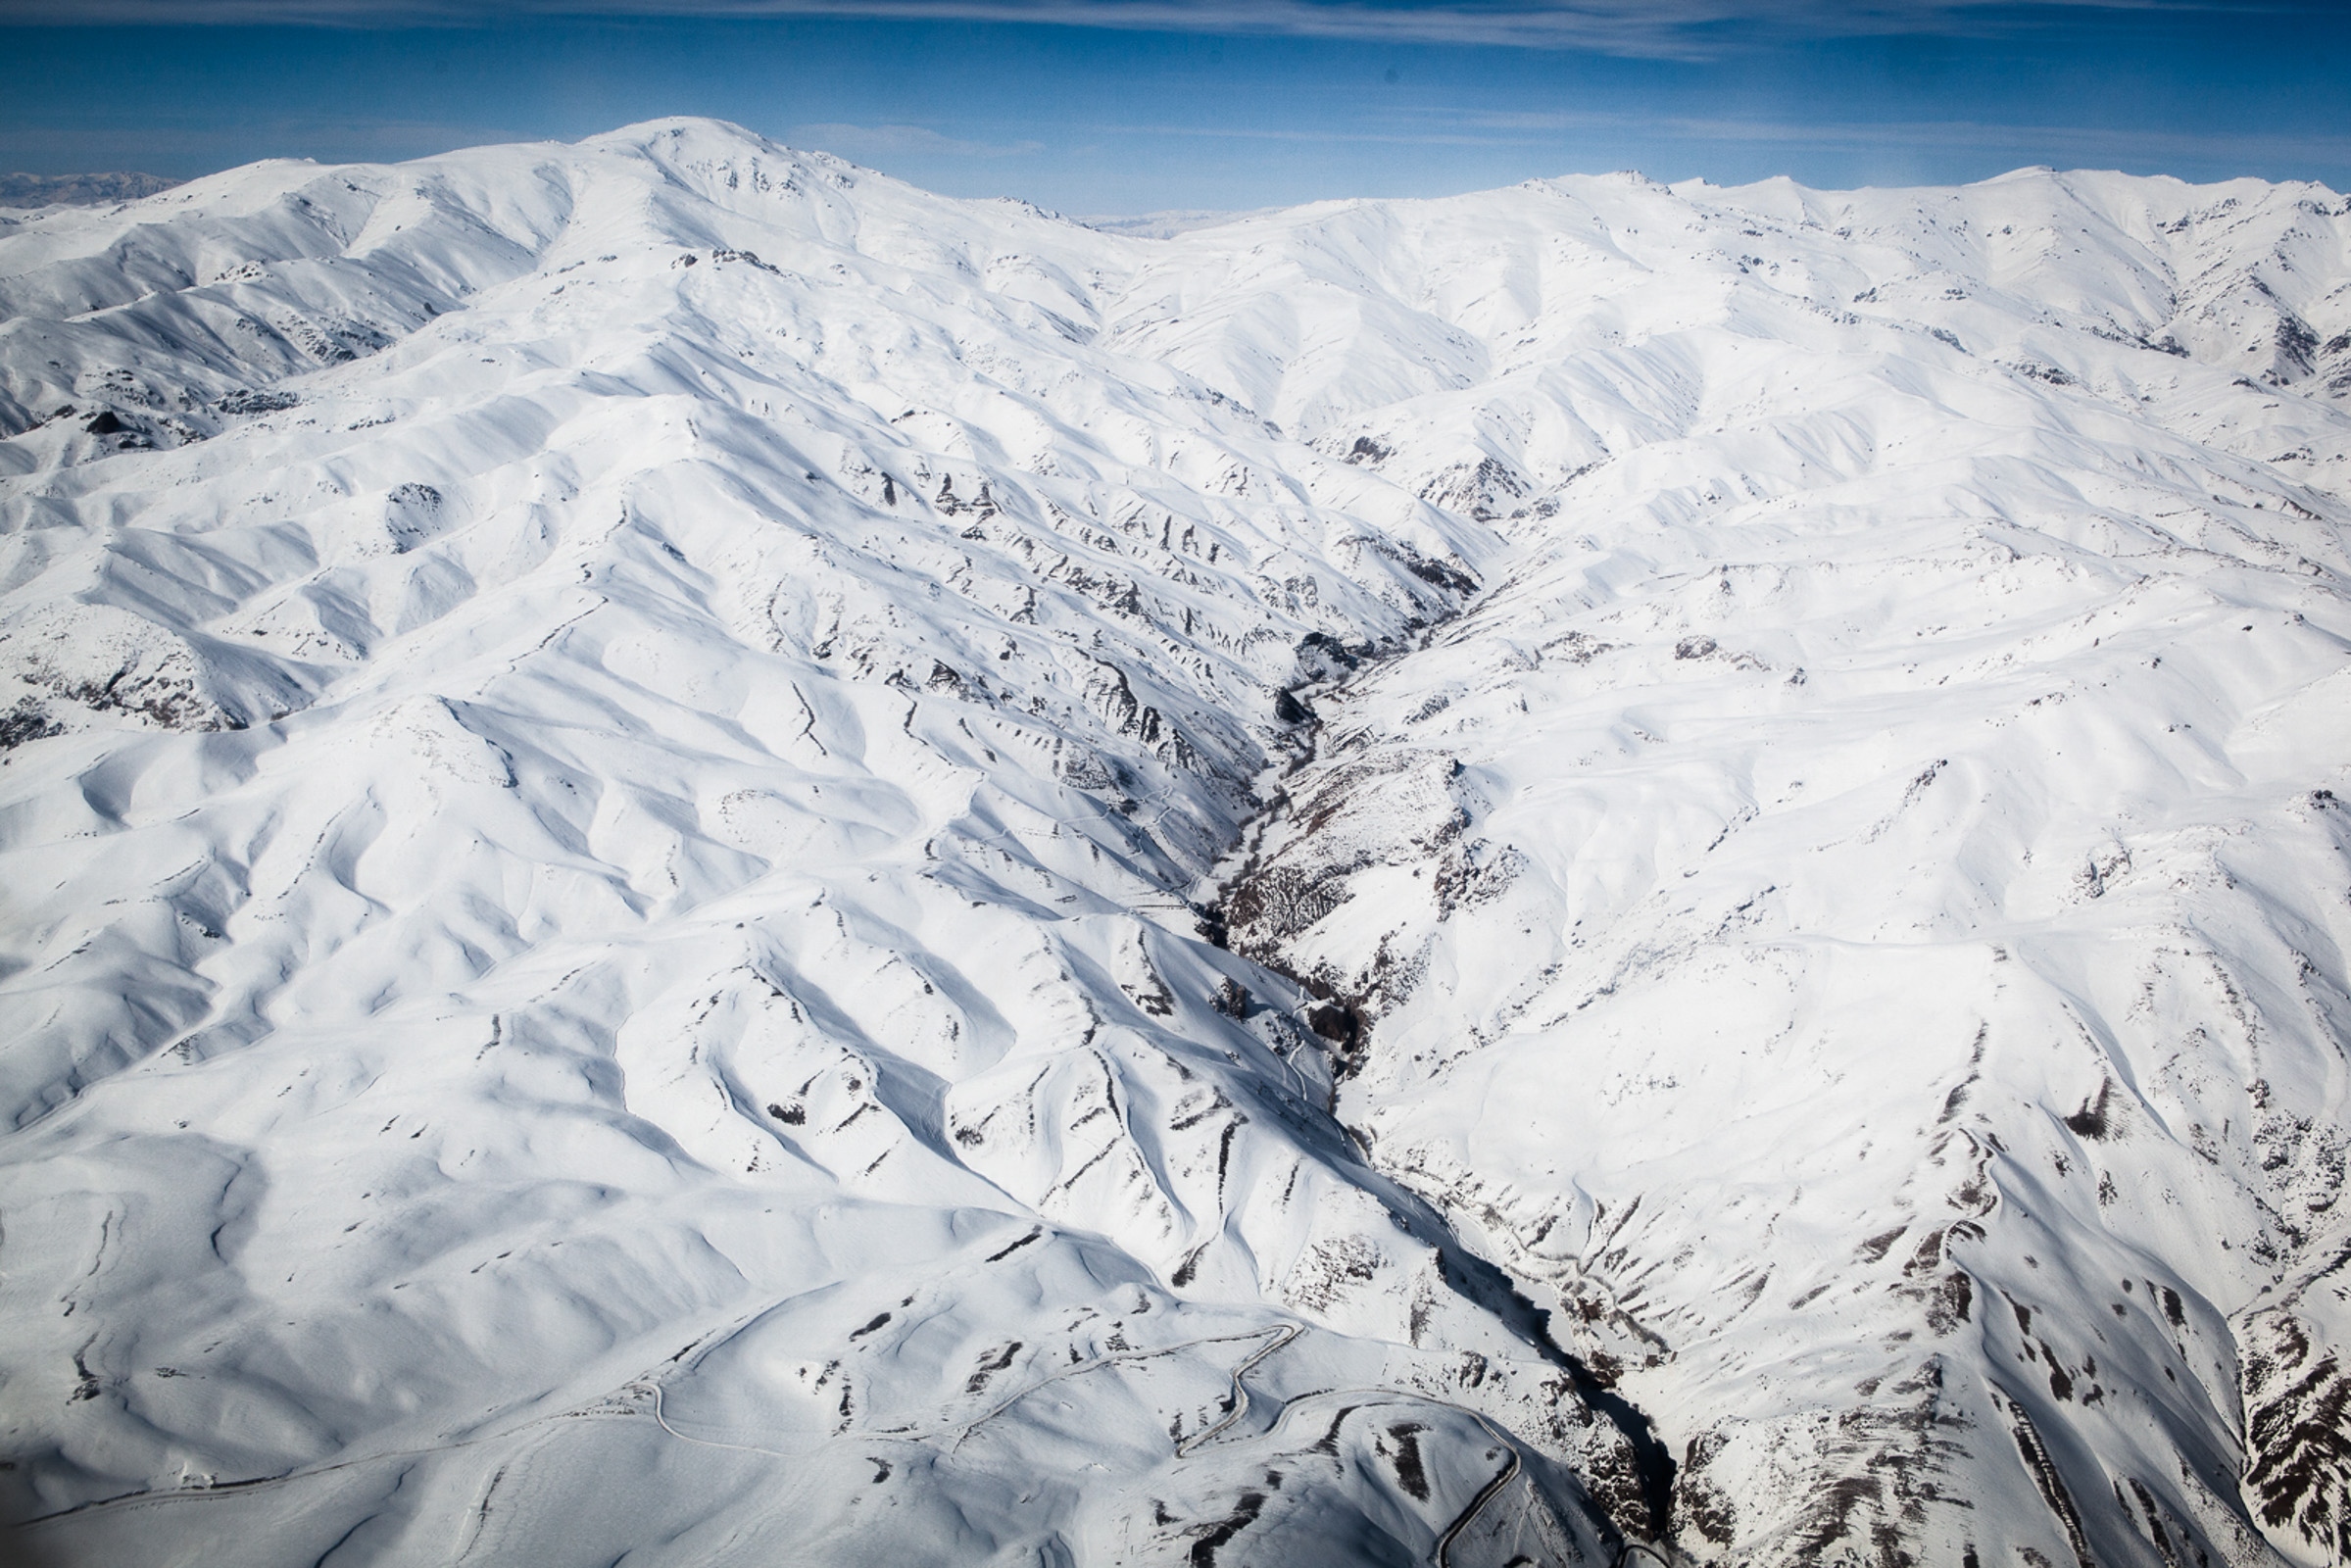 Entre Kaboul et Bamiyan, le 28 février 2013. Vol au dessus des massifs de l'Indu Kush, en route pour la compétition de ski du Bamiyan ski challenge.  Between Kabul and Bamiyan, February 28, 2013. Flight over the mountains of the Hindu Kush, en route to the Bamiyan ski challenge.